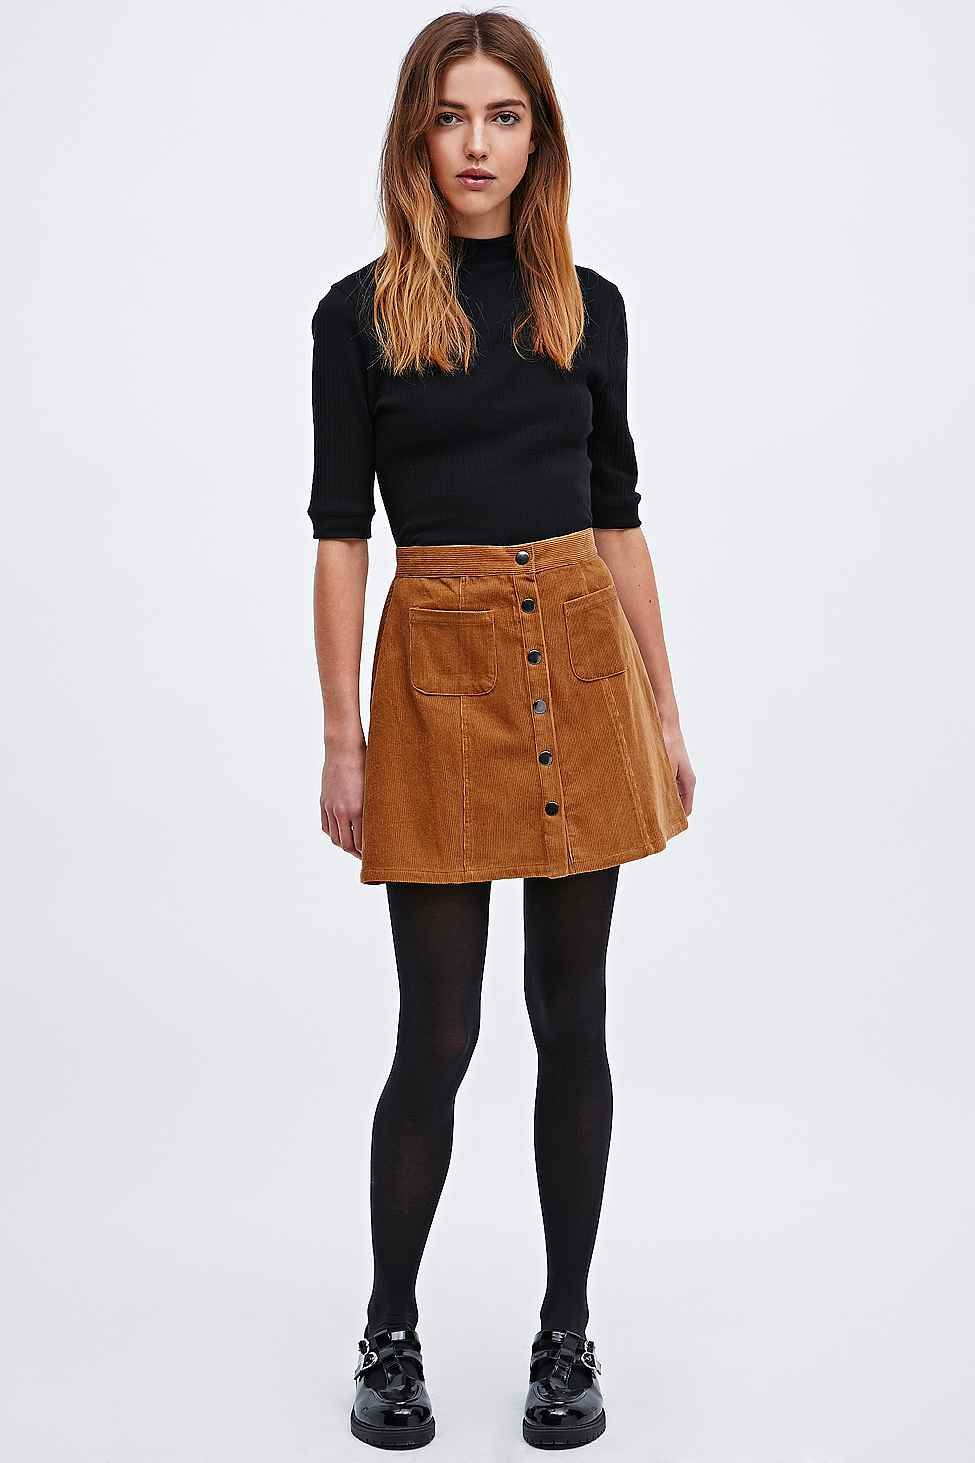 Cooperative - Jupe trapu00e8ze en velours | appearance. | Pinterest | Cord Clothes and Suede skirt